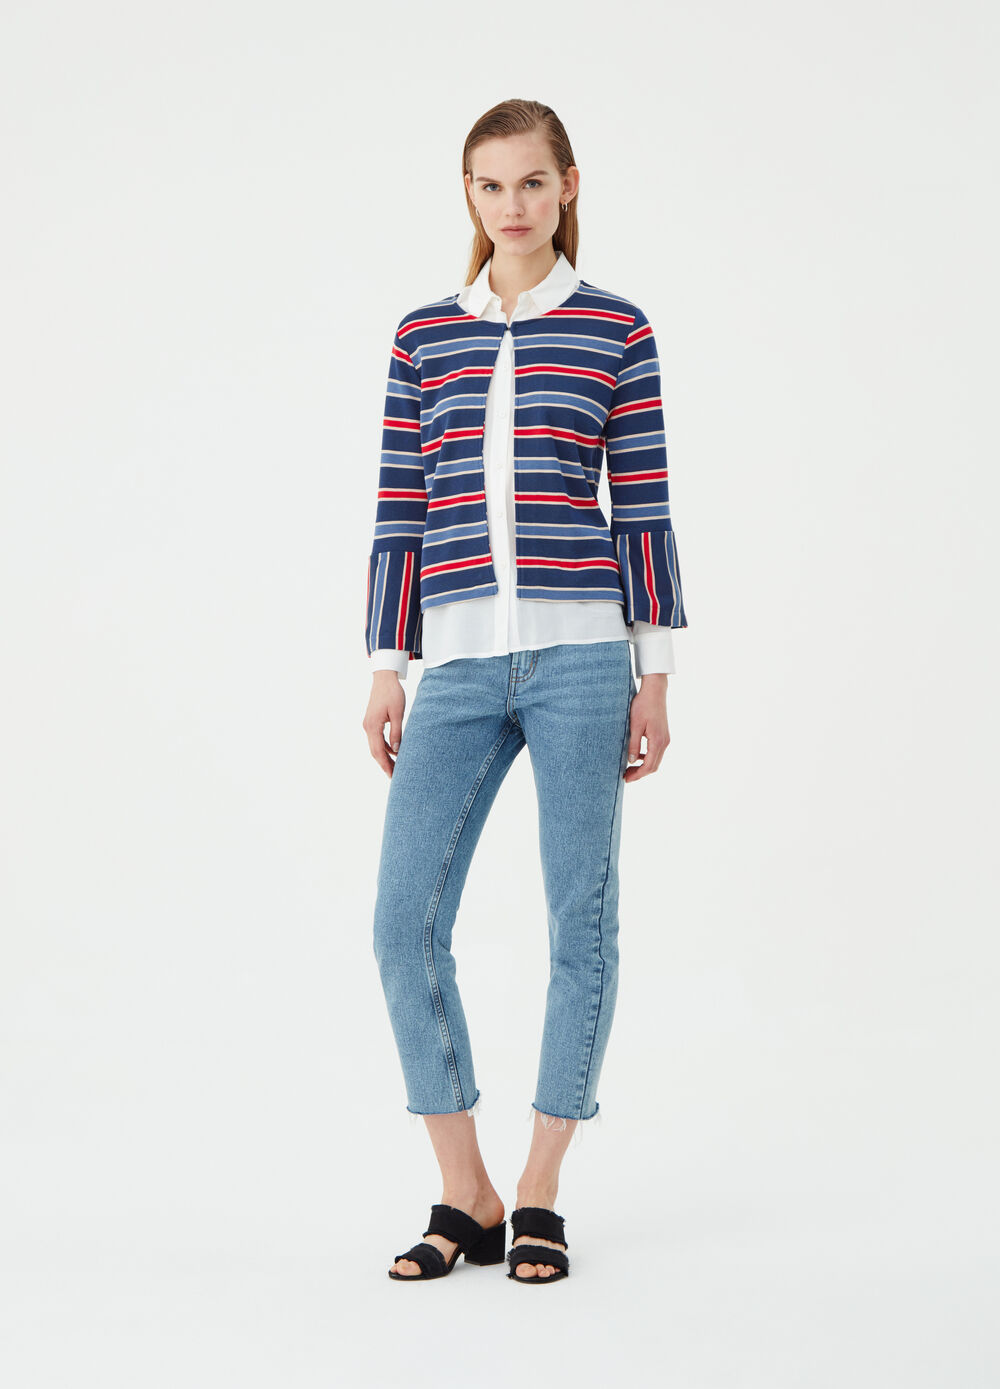 Cardigan with striped patterned lurex